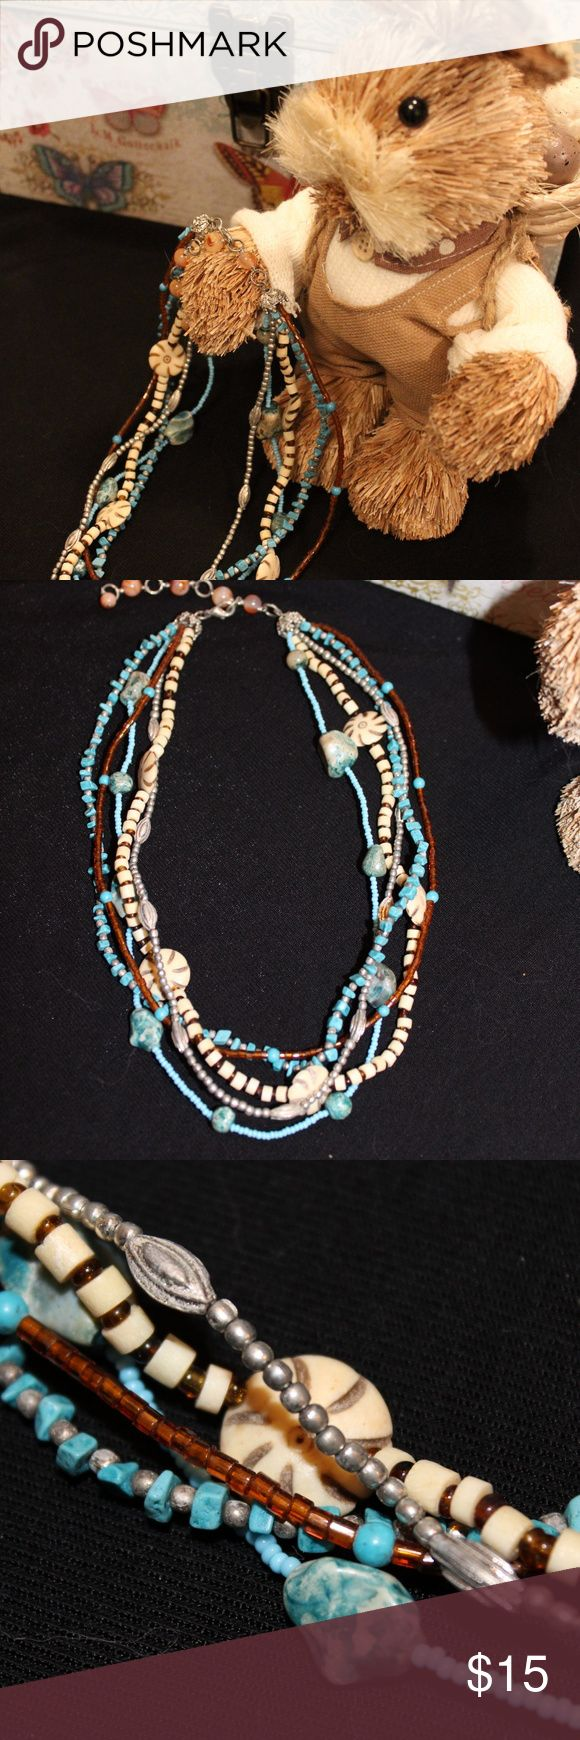 Cute Multi Strand Necklace This necklace consists of very ornate beads in aquas and browns. Jewelry Necklaces